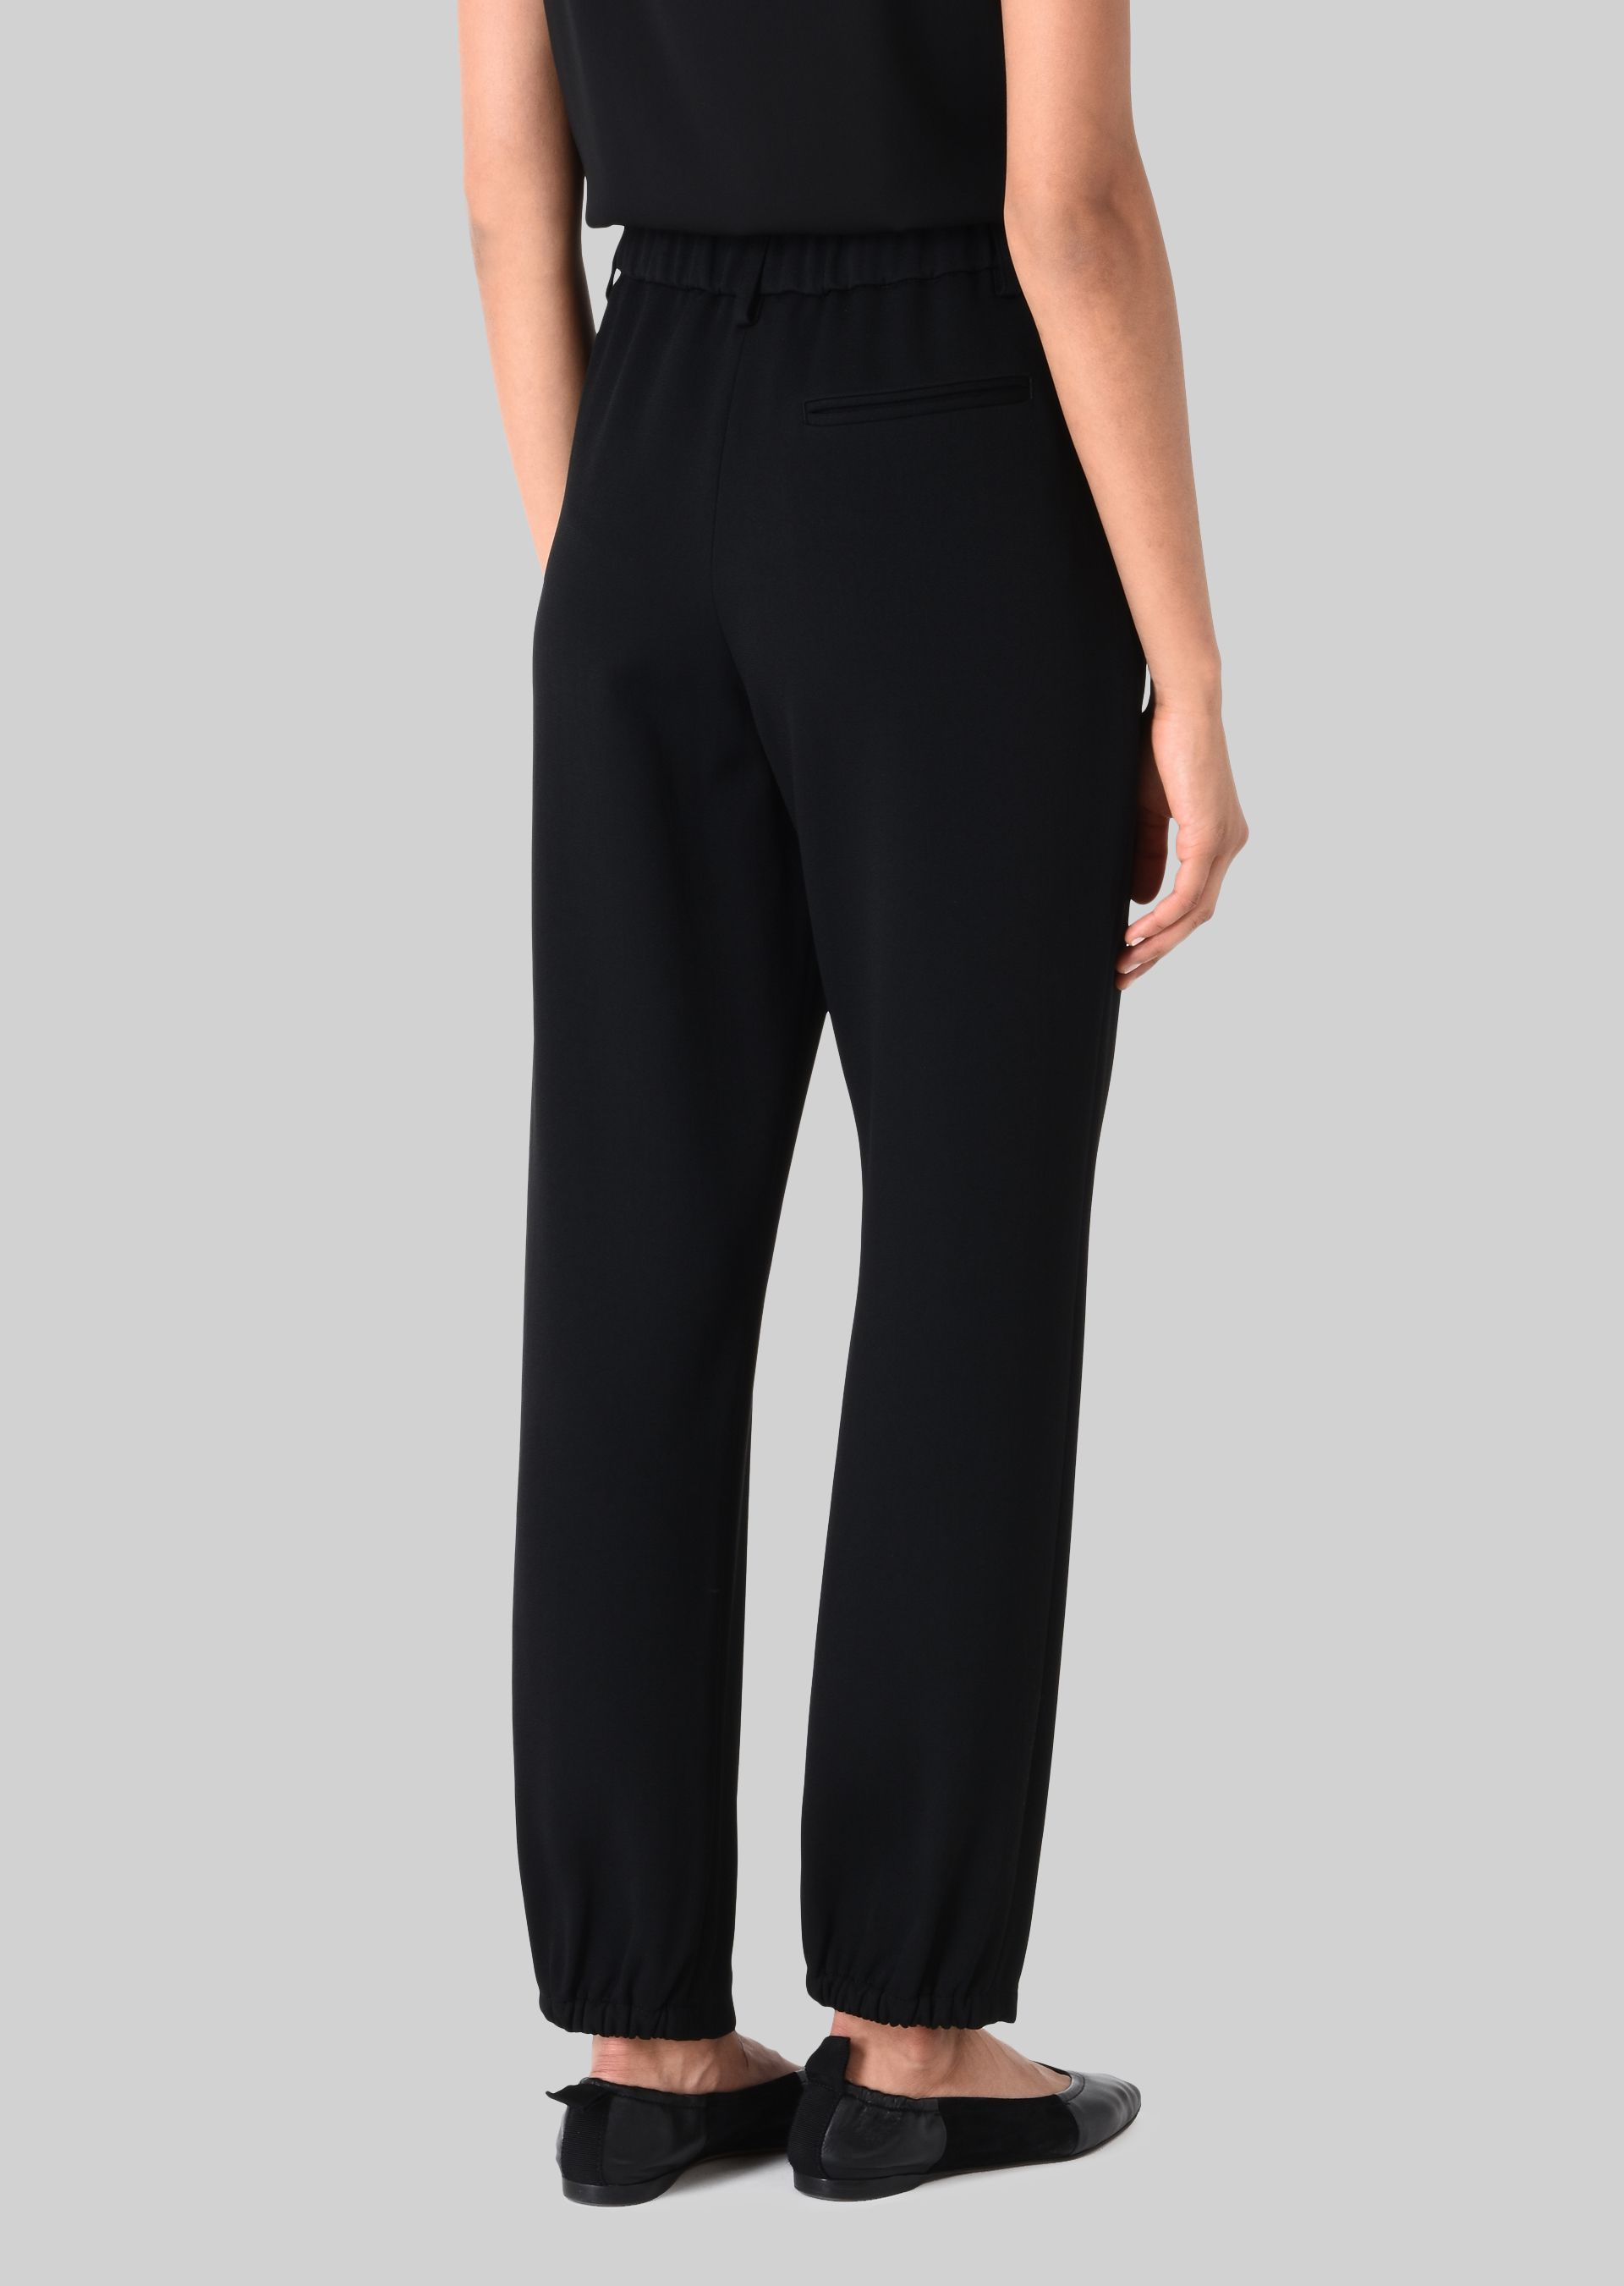 GIORGIO ARMANI CLASSIC TROUSERS IN TECHNICAL FABRIC Pants D e